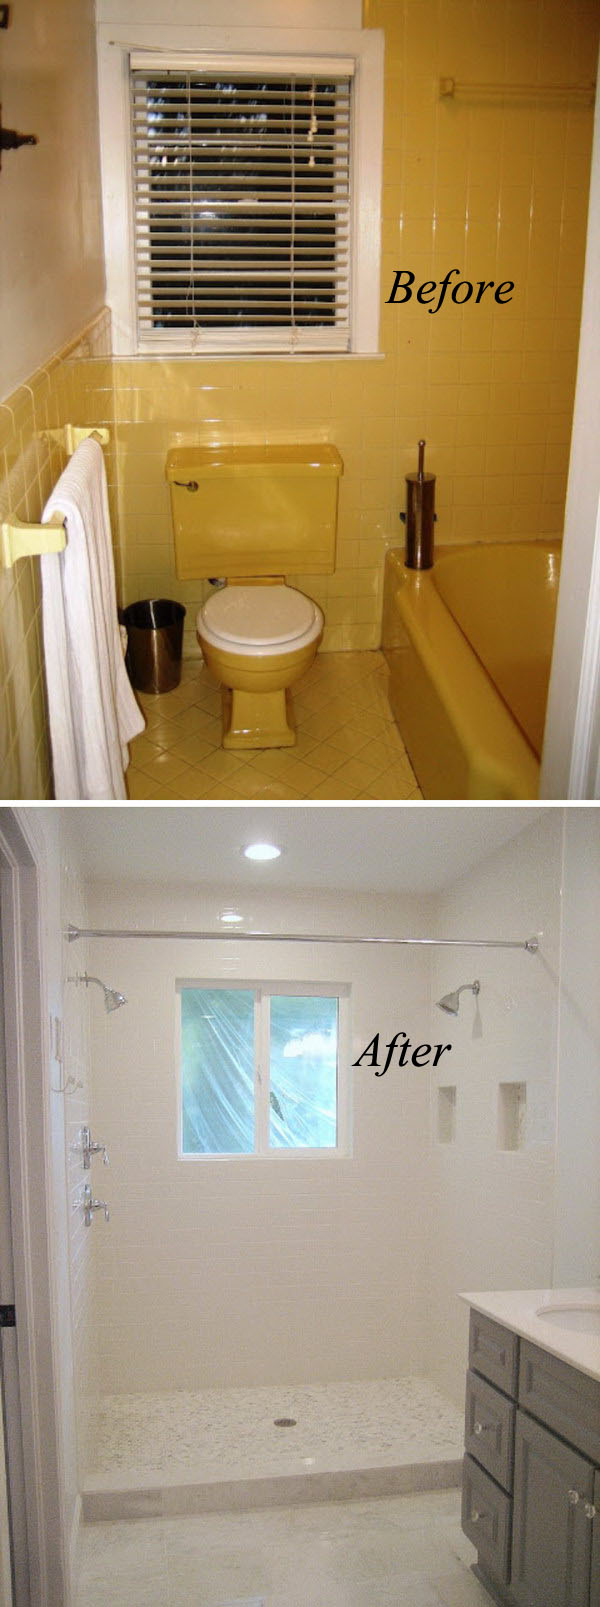 39-40-bathroom-remodel-before-and-after